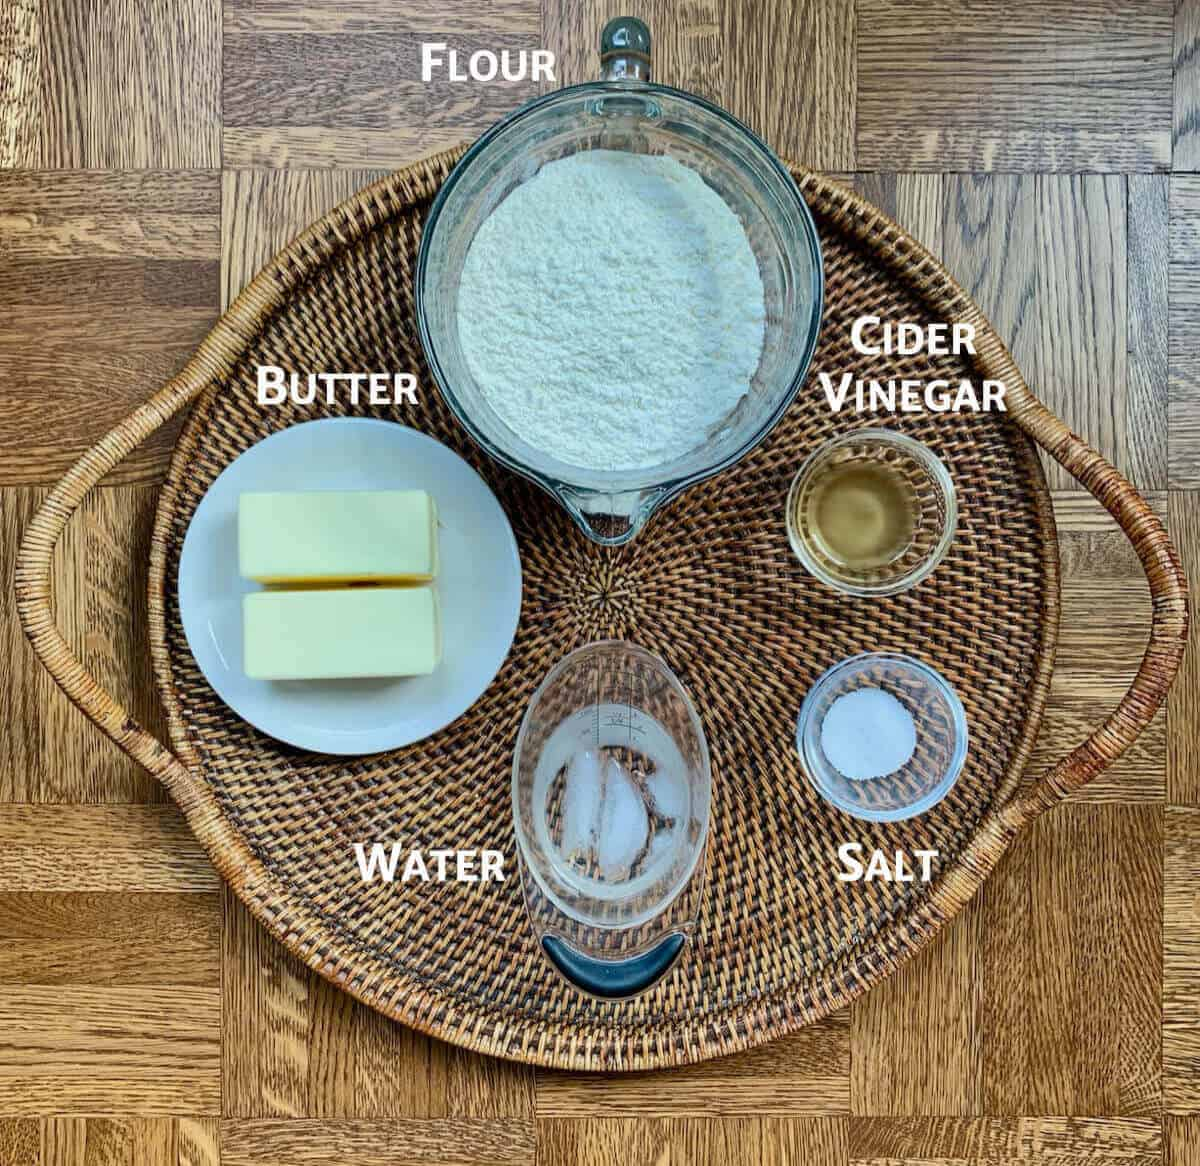 Pie crust ingredients in glass bowls on a wooden tray.